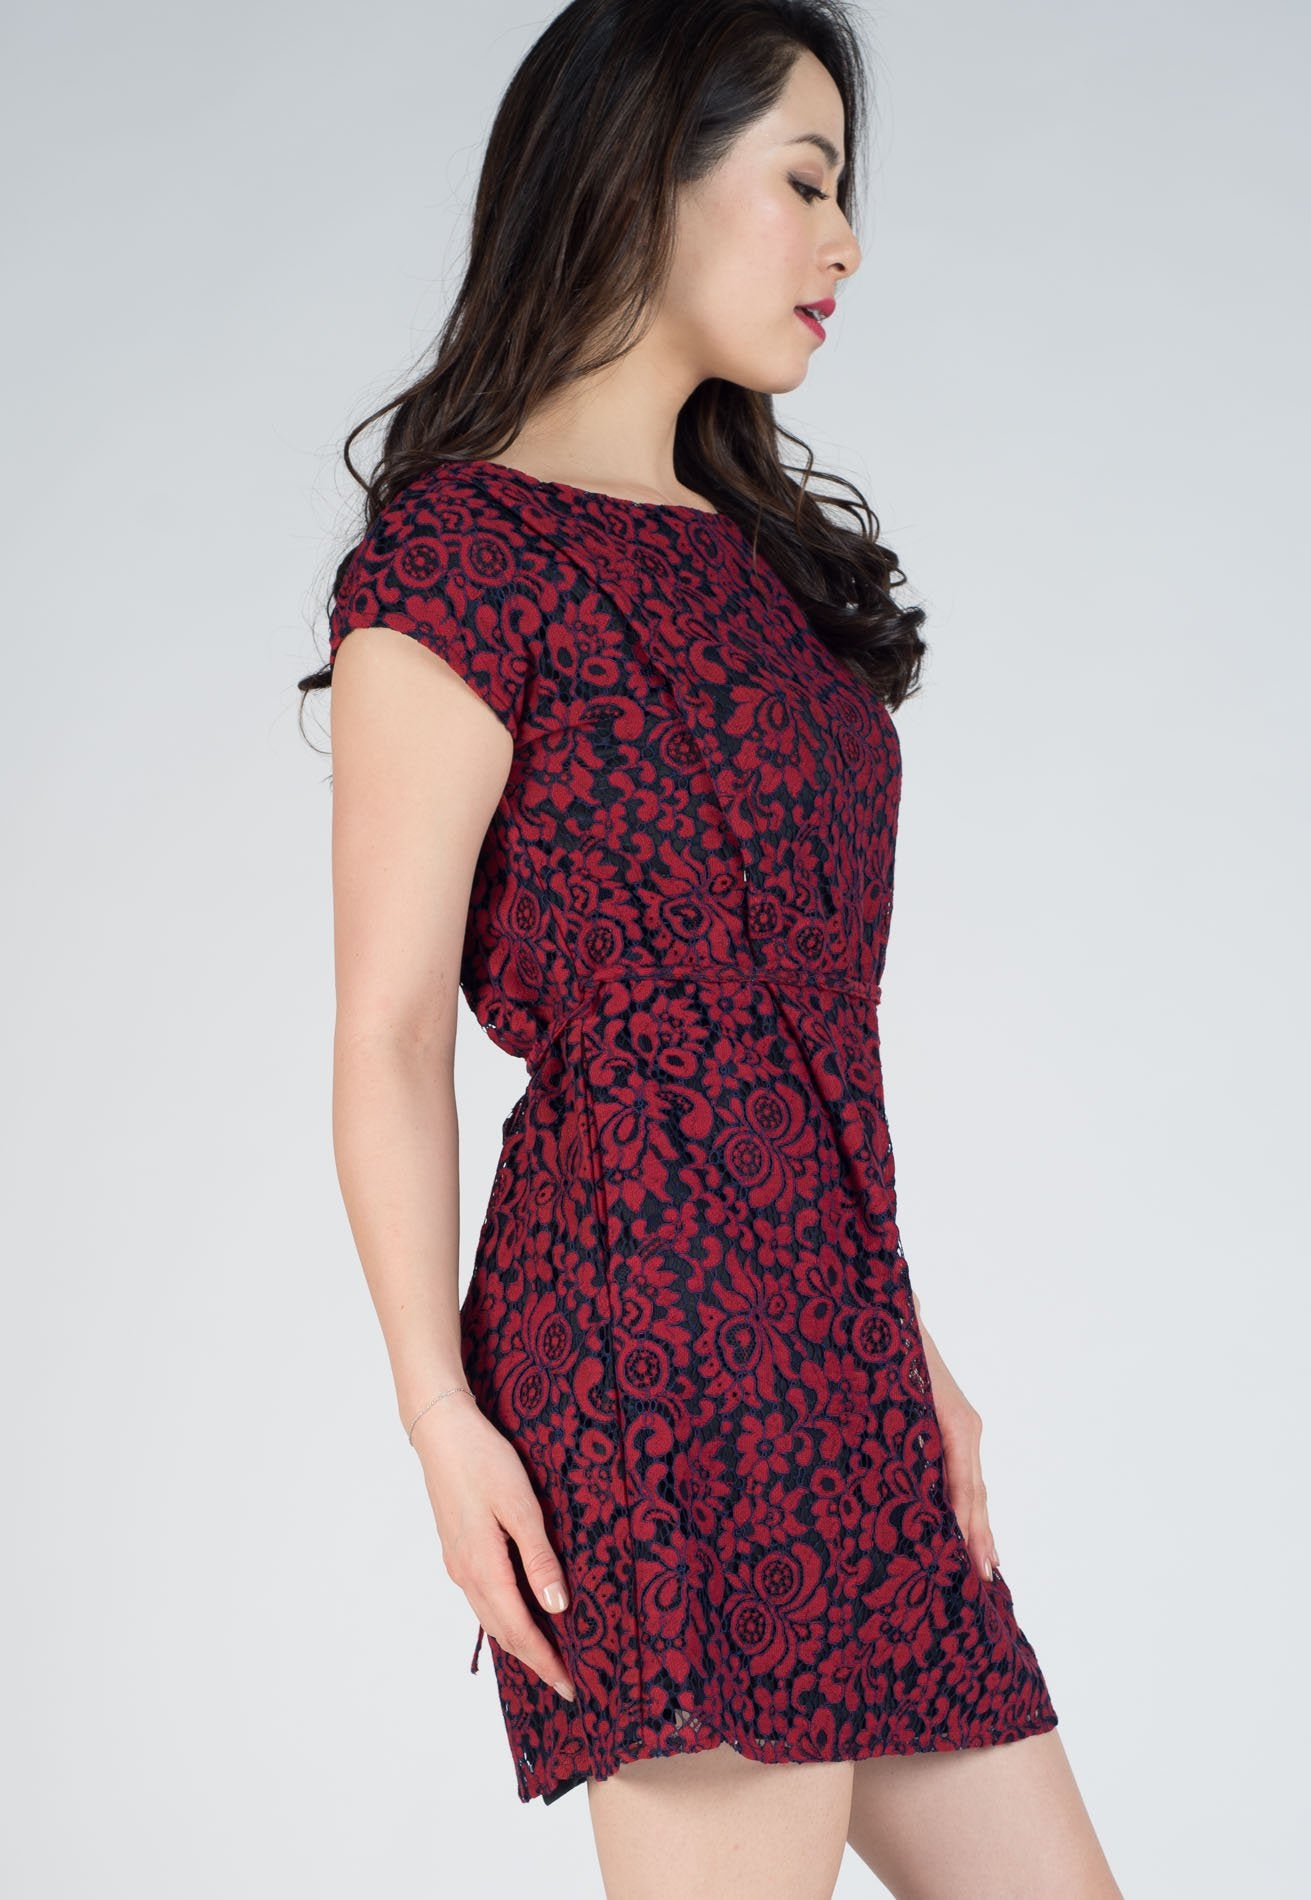 6164c96907df7 ... SALE Chester Lace Nursing Dress by Jump Eat Cry - Maternity and nursing  wear